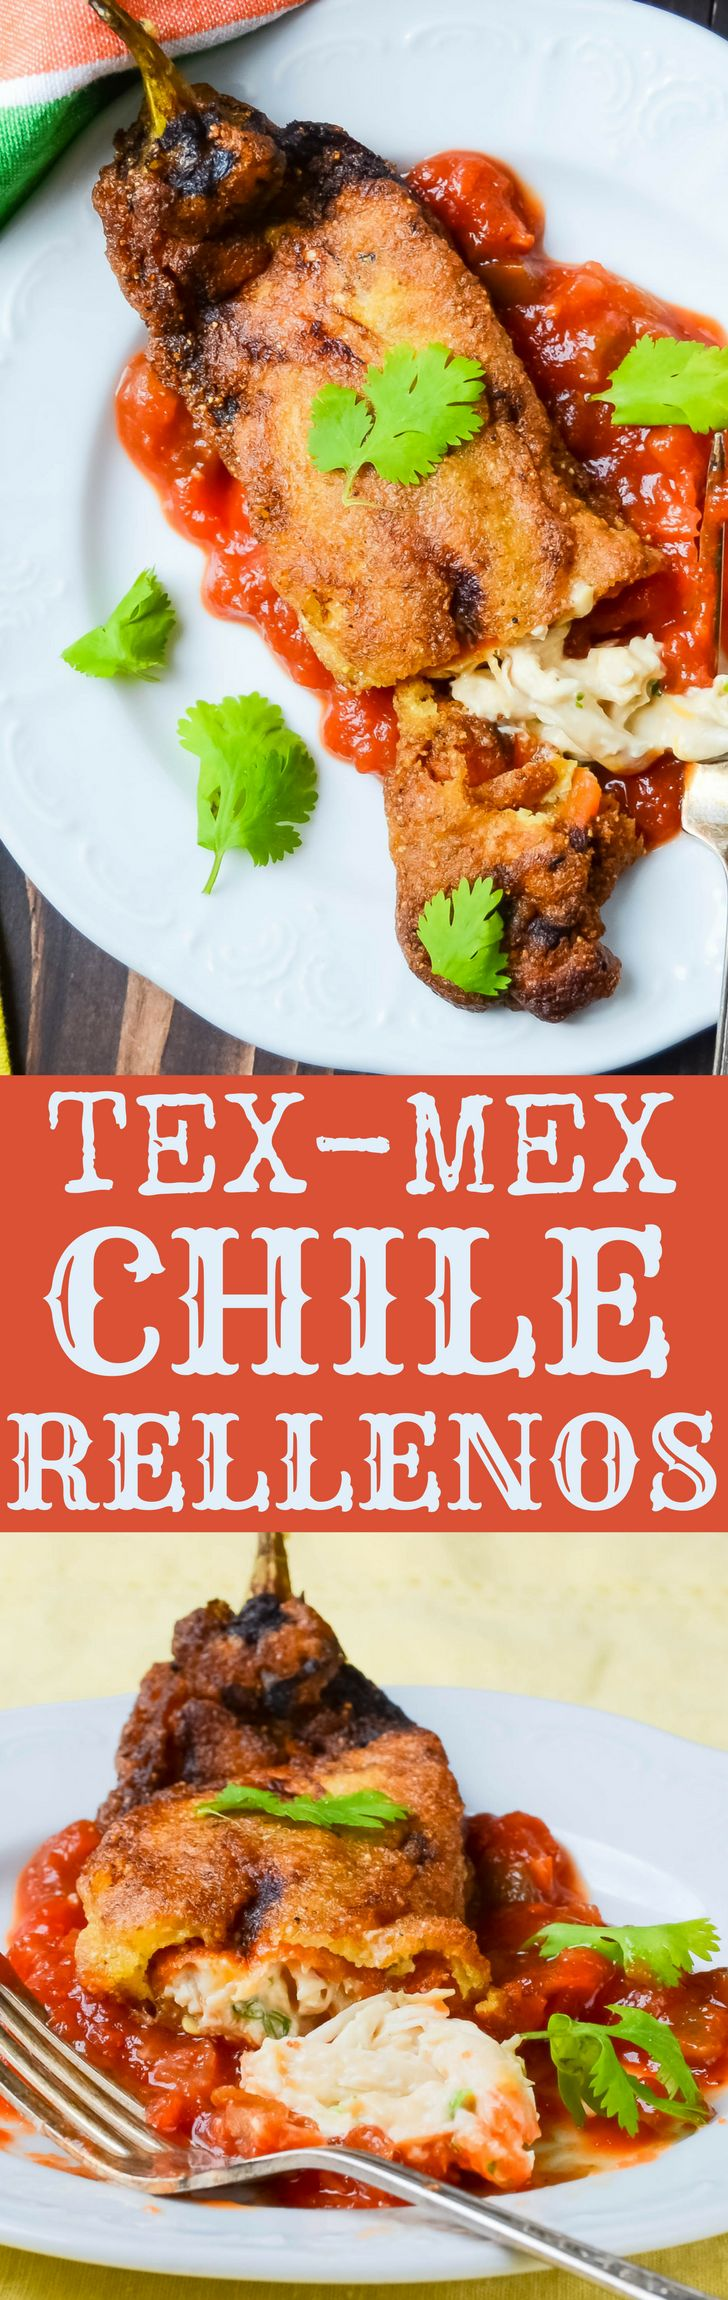 This stuffed chile rellenos recipe uses fire roasted hatch chiles and cheesy chicken filling with a simple chile relleno batter. Tex-Mex Chicken Chile Rellenos are crispy, tender and delicious. #chiles #chilerellenos #chilerellenosrecipe #chicken #stuffedpeppers #friedpeppers #friedchiles #texmex #cincodemayorecipes #stuffedfriedchiles #rellenos #cheese #creamcheese #cheddarcheese #chilerellenobatter #stuffedchilerellenosrecipe via @GarlicandZest